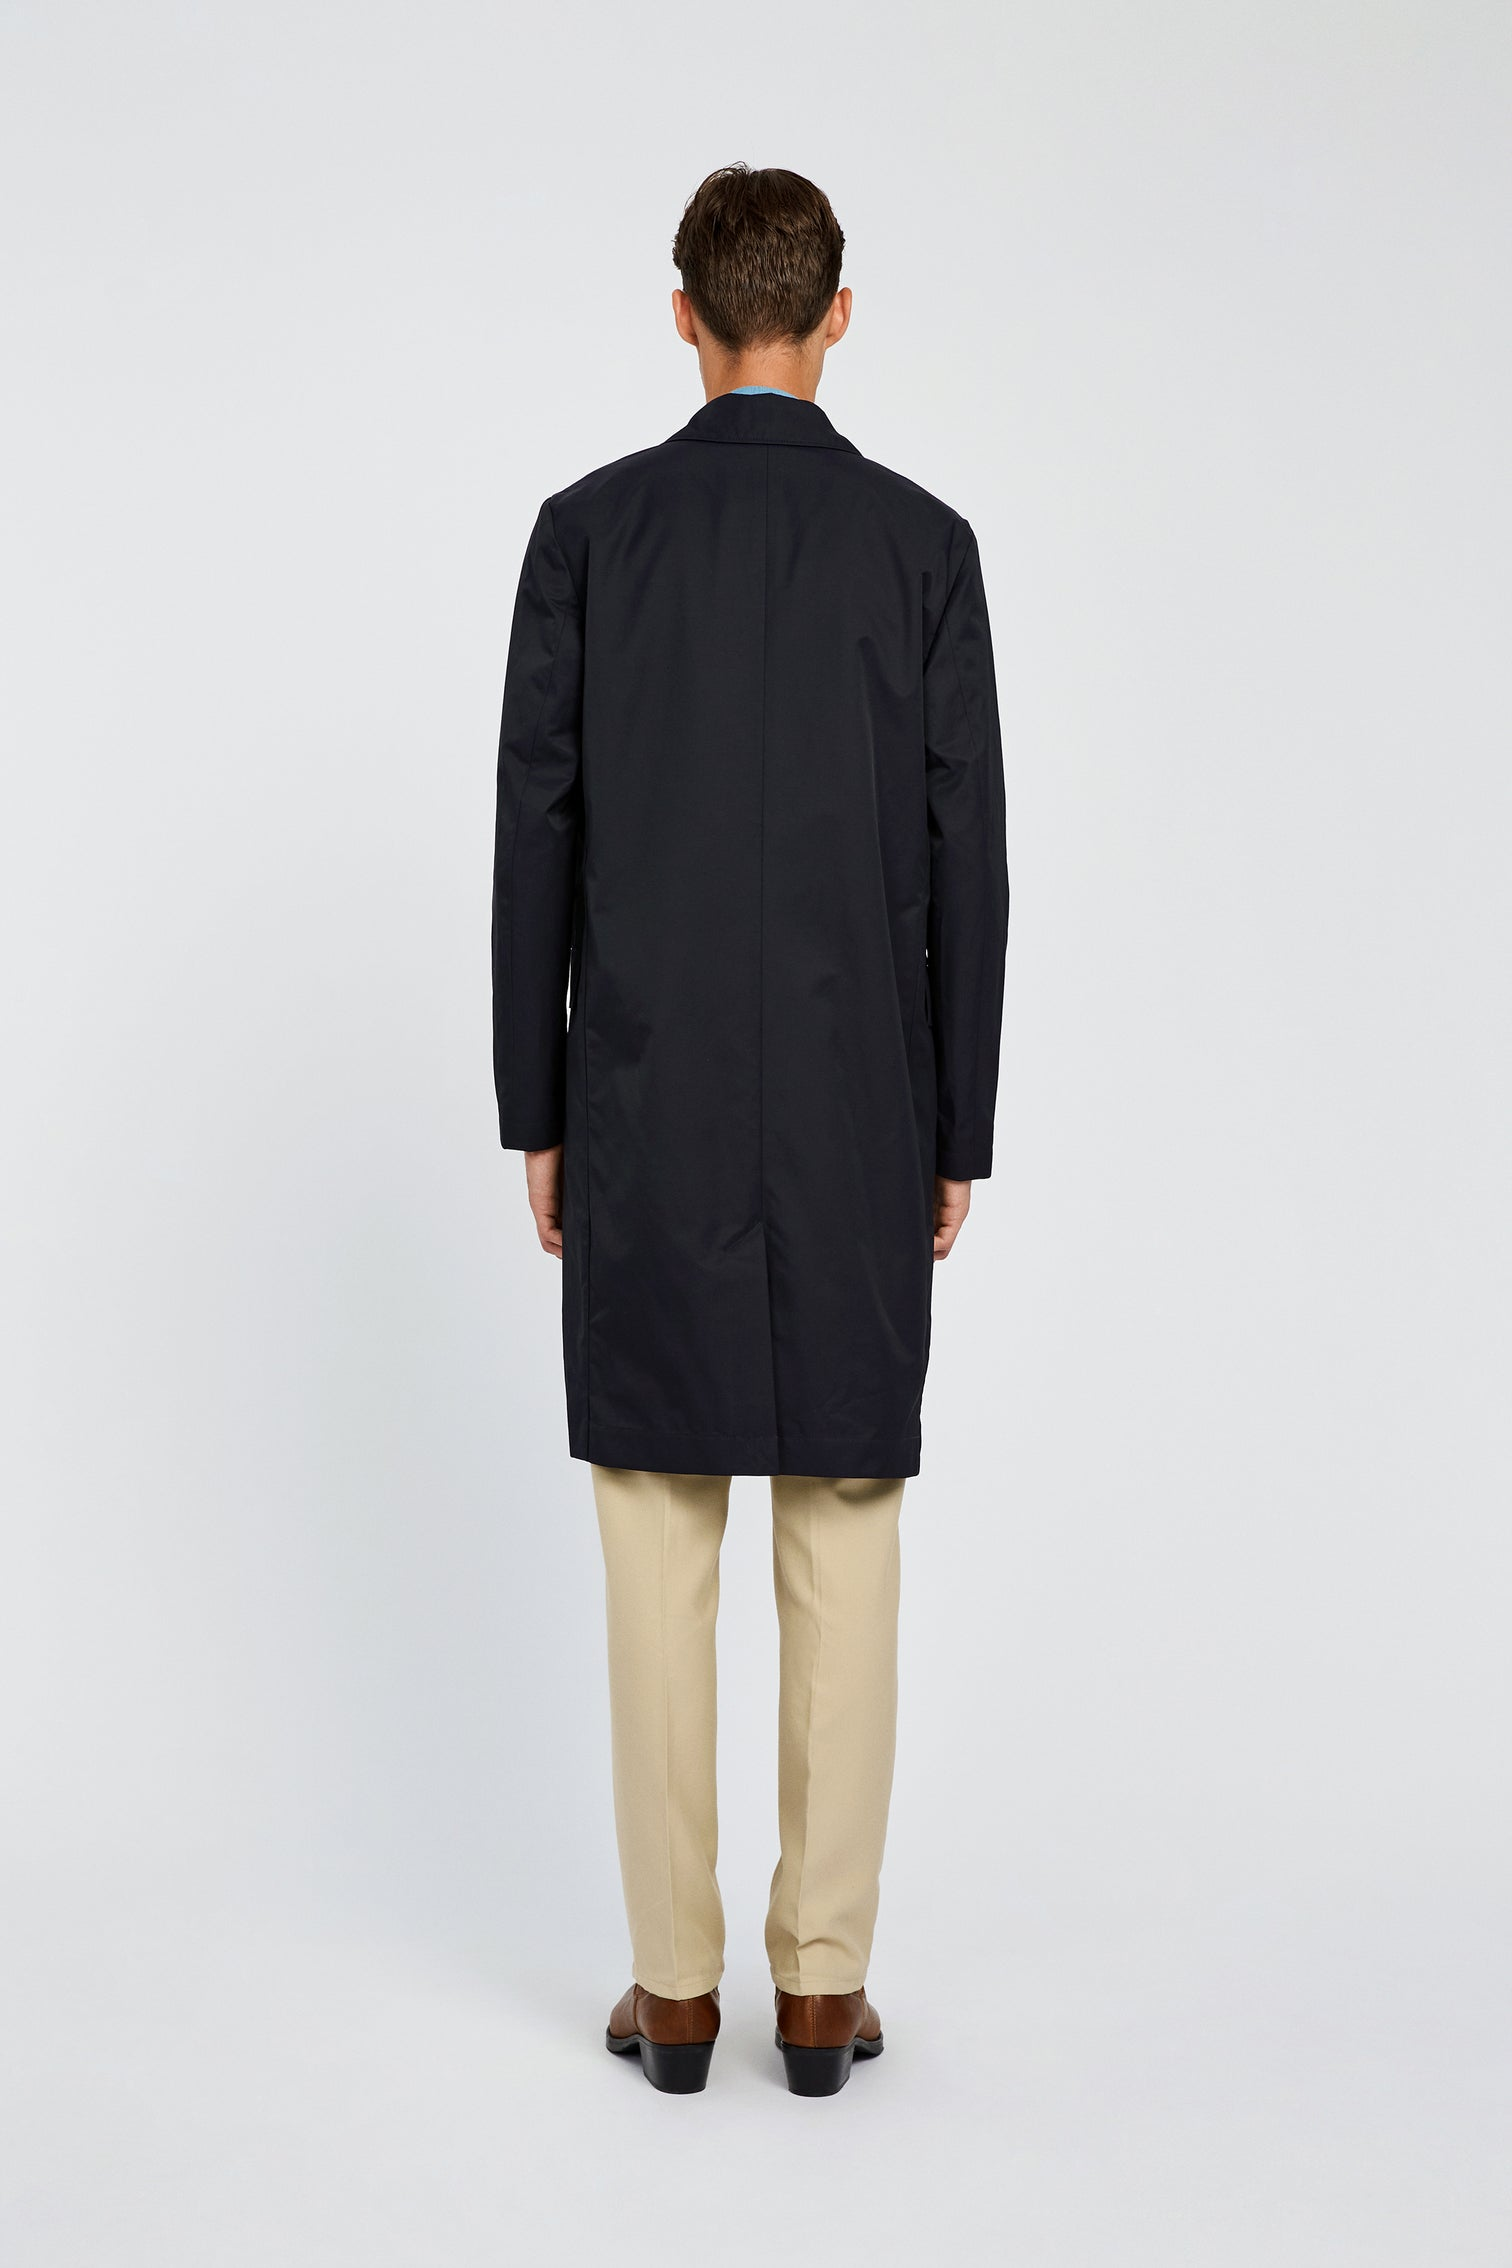 Won Hundred Men Julius Coat Outerwear Dark Navy